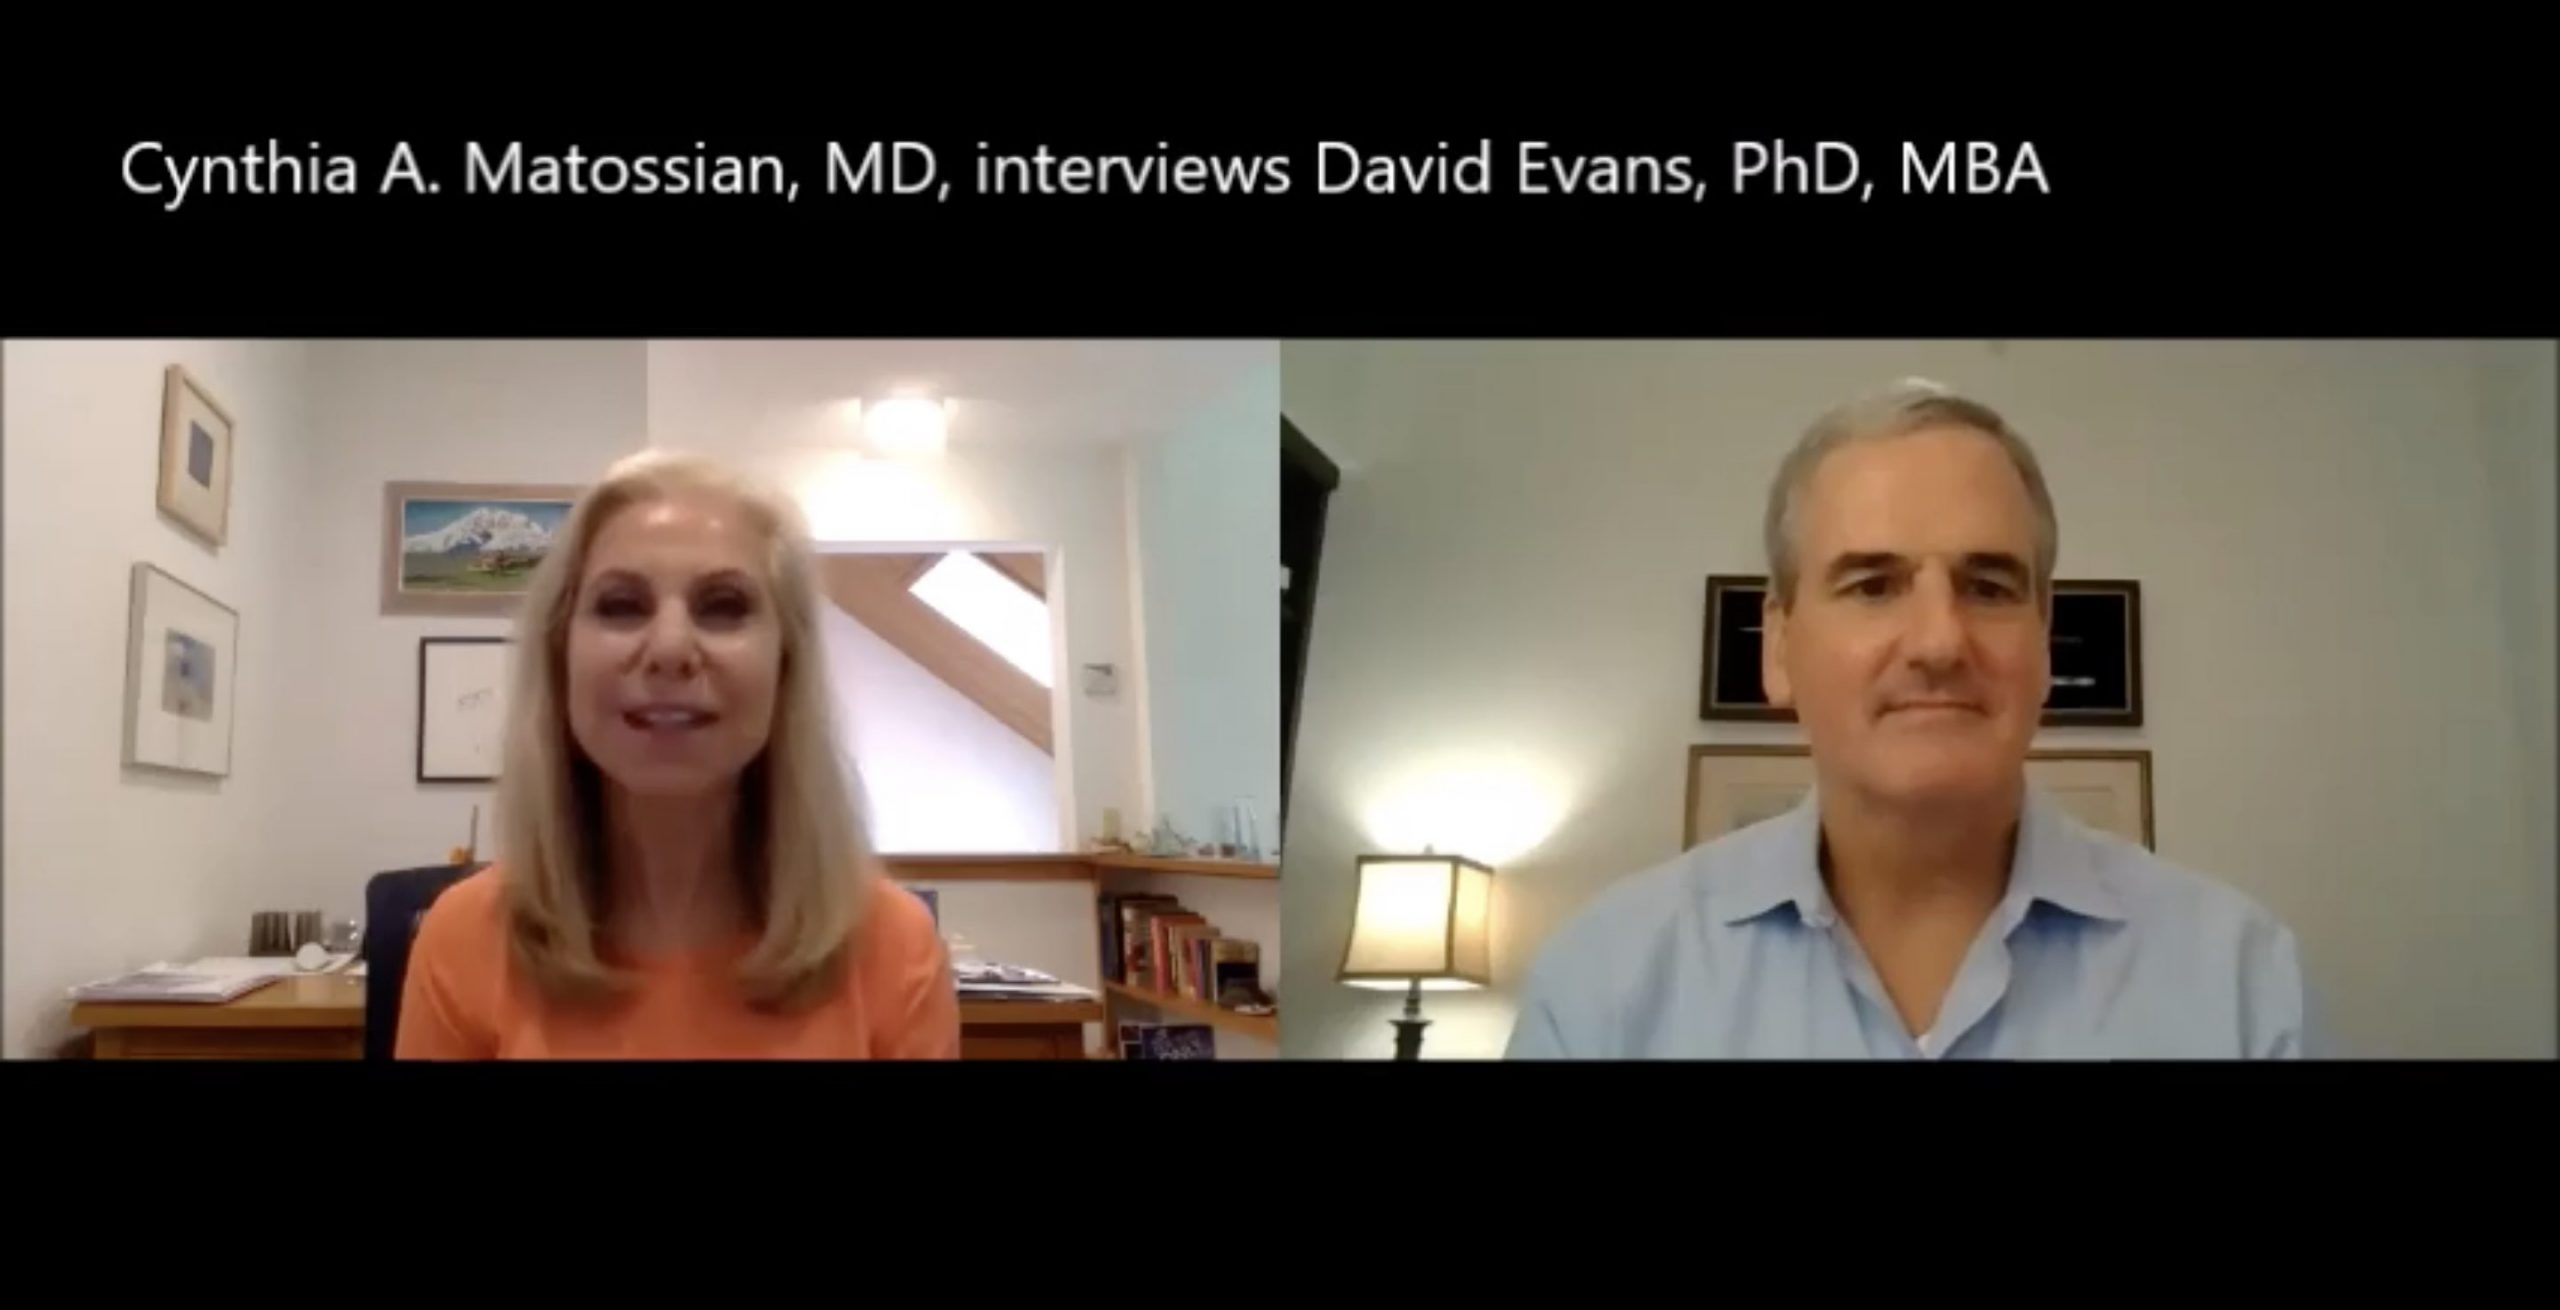 Cynthia A. Matossian, MD, interviews David Evans, PhD, MBA